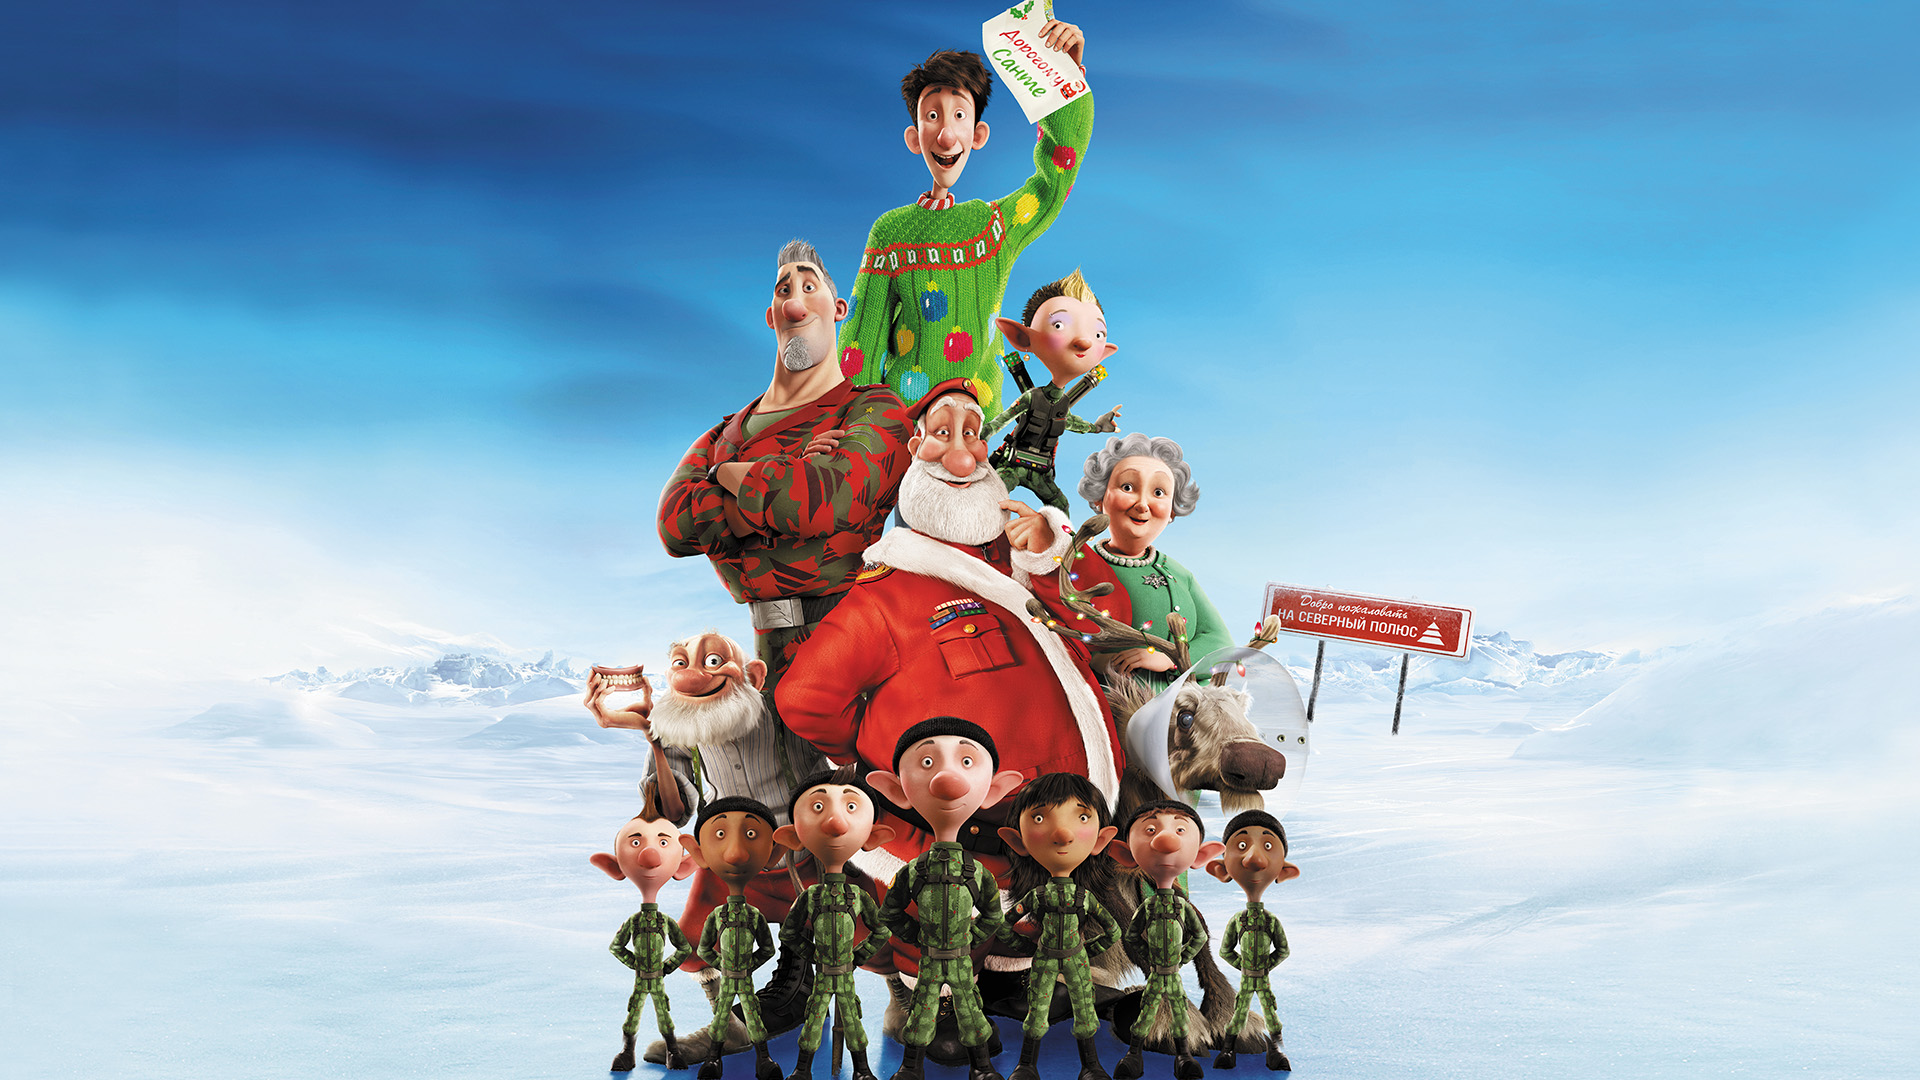 Arthur Christmas Finds The Funny People The Velvet Onion